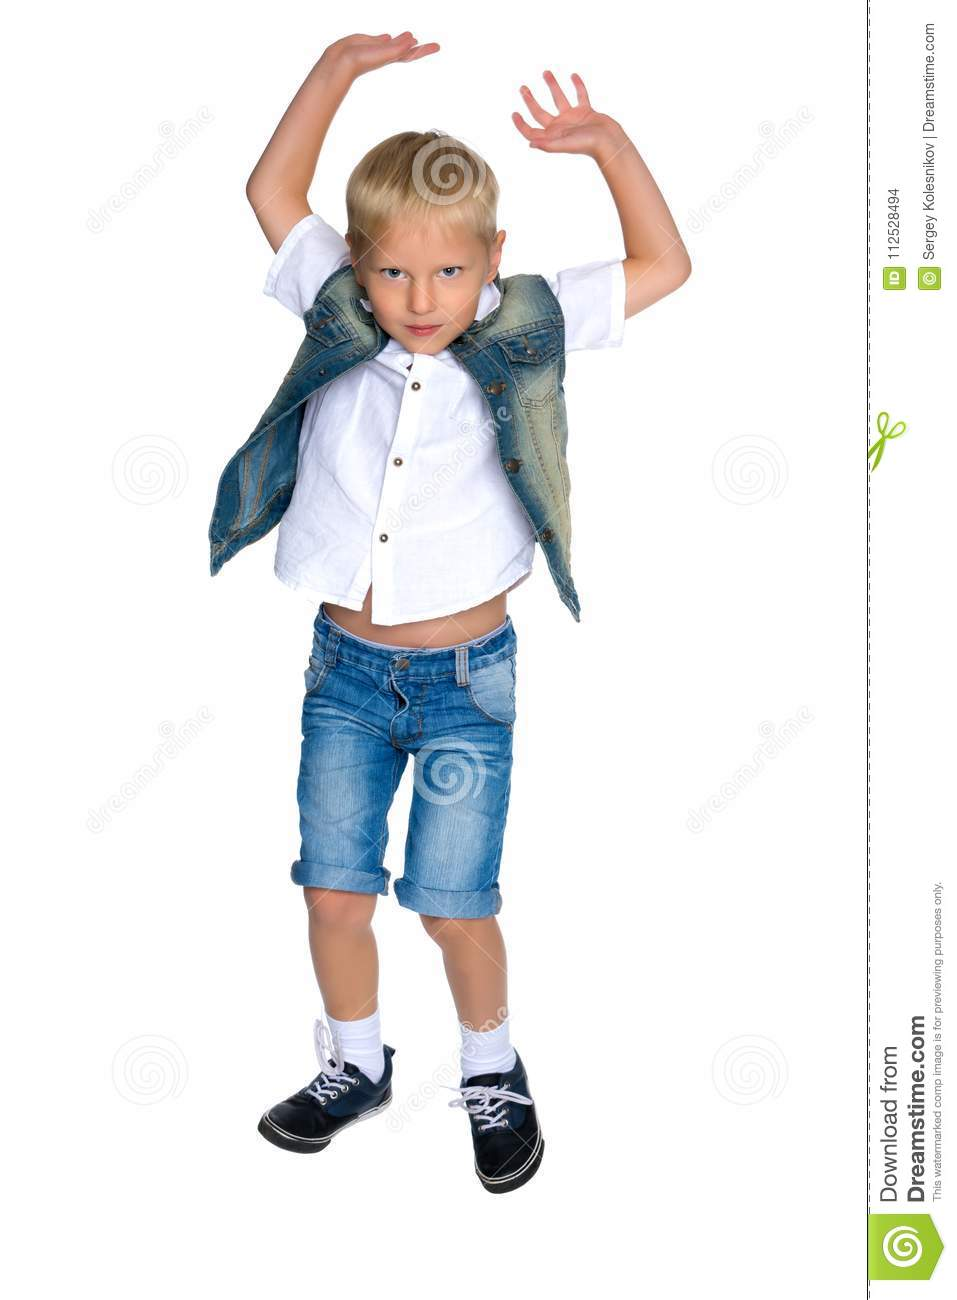 66f8fa317 Little boy jumping stock photo. Image of moment